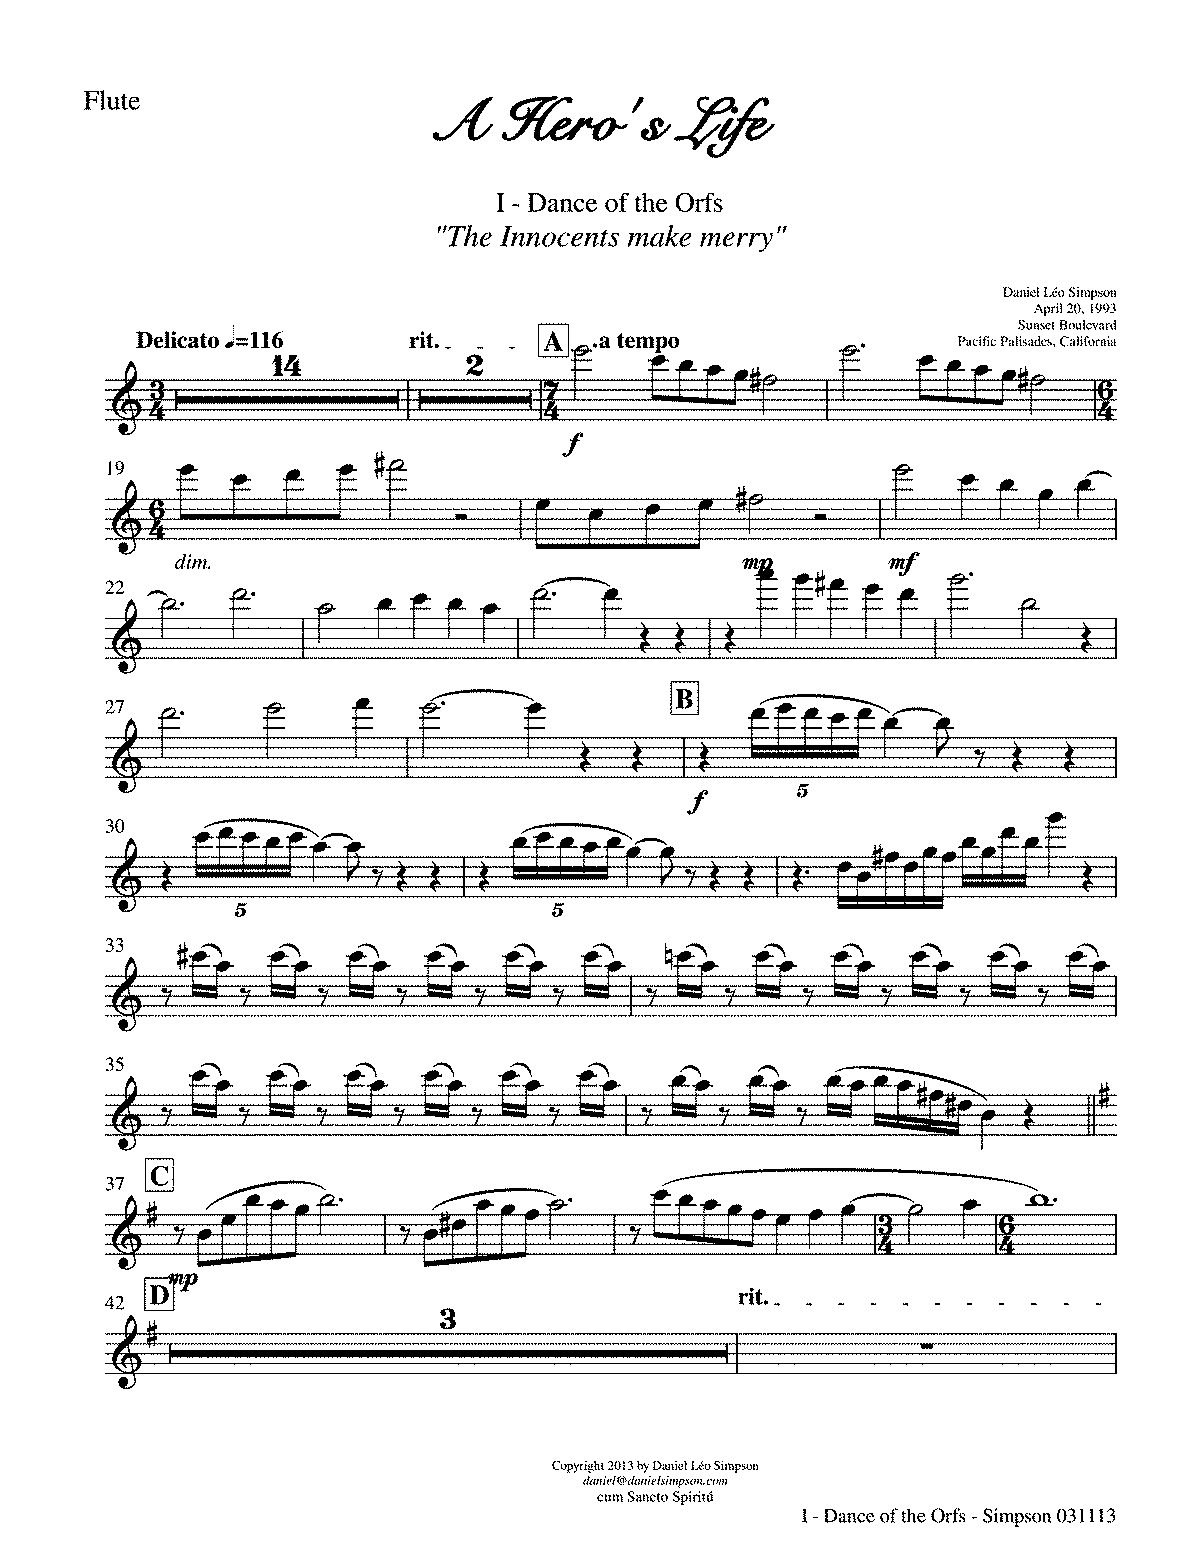 PMLP443195-flute-Dance of the Orfs-simpson-imslp-031113.pdf